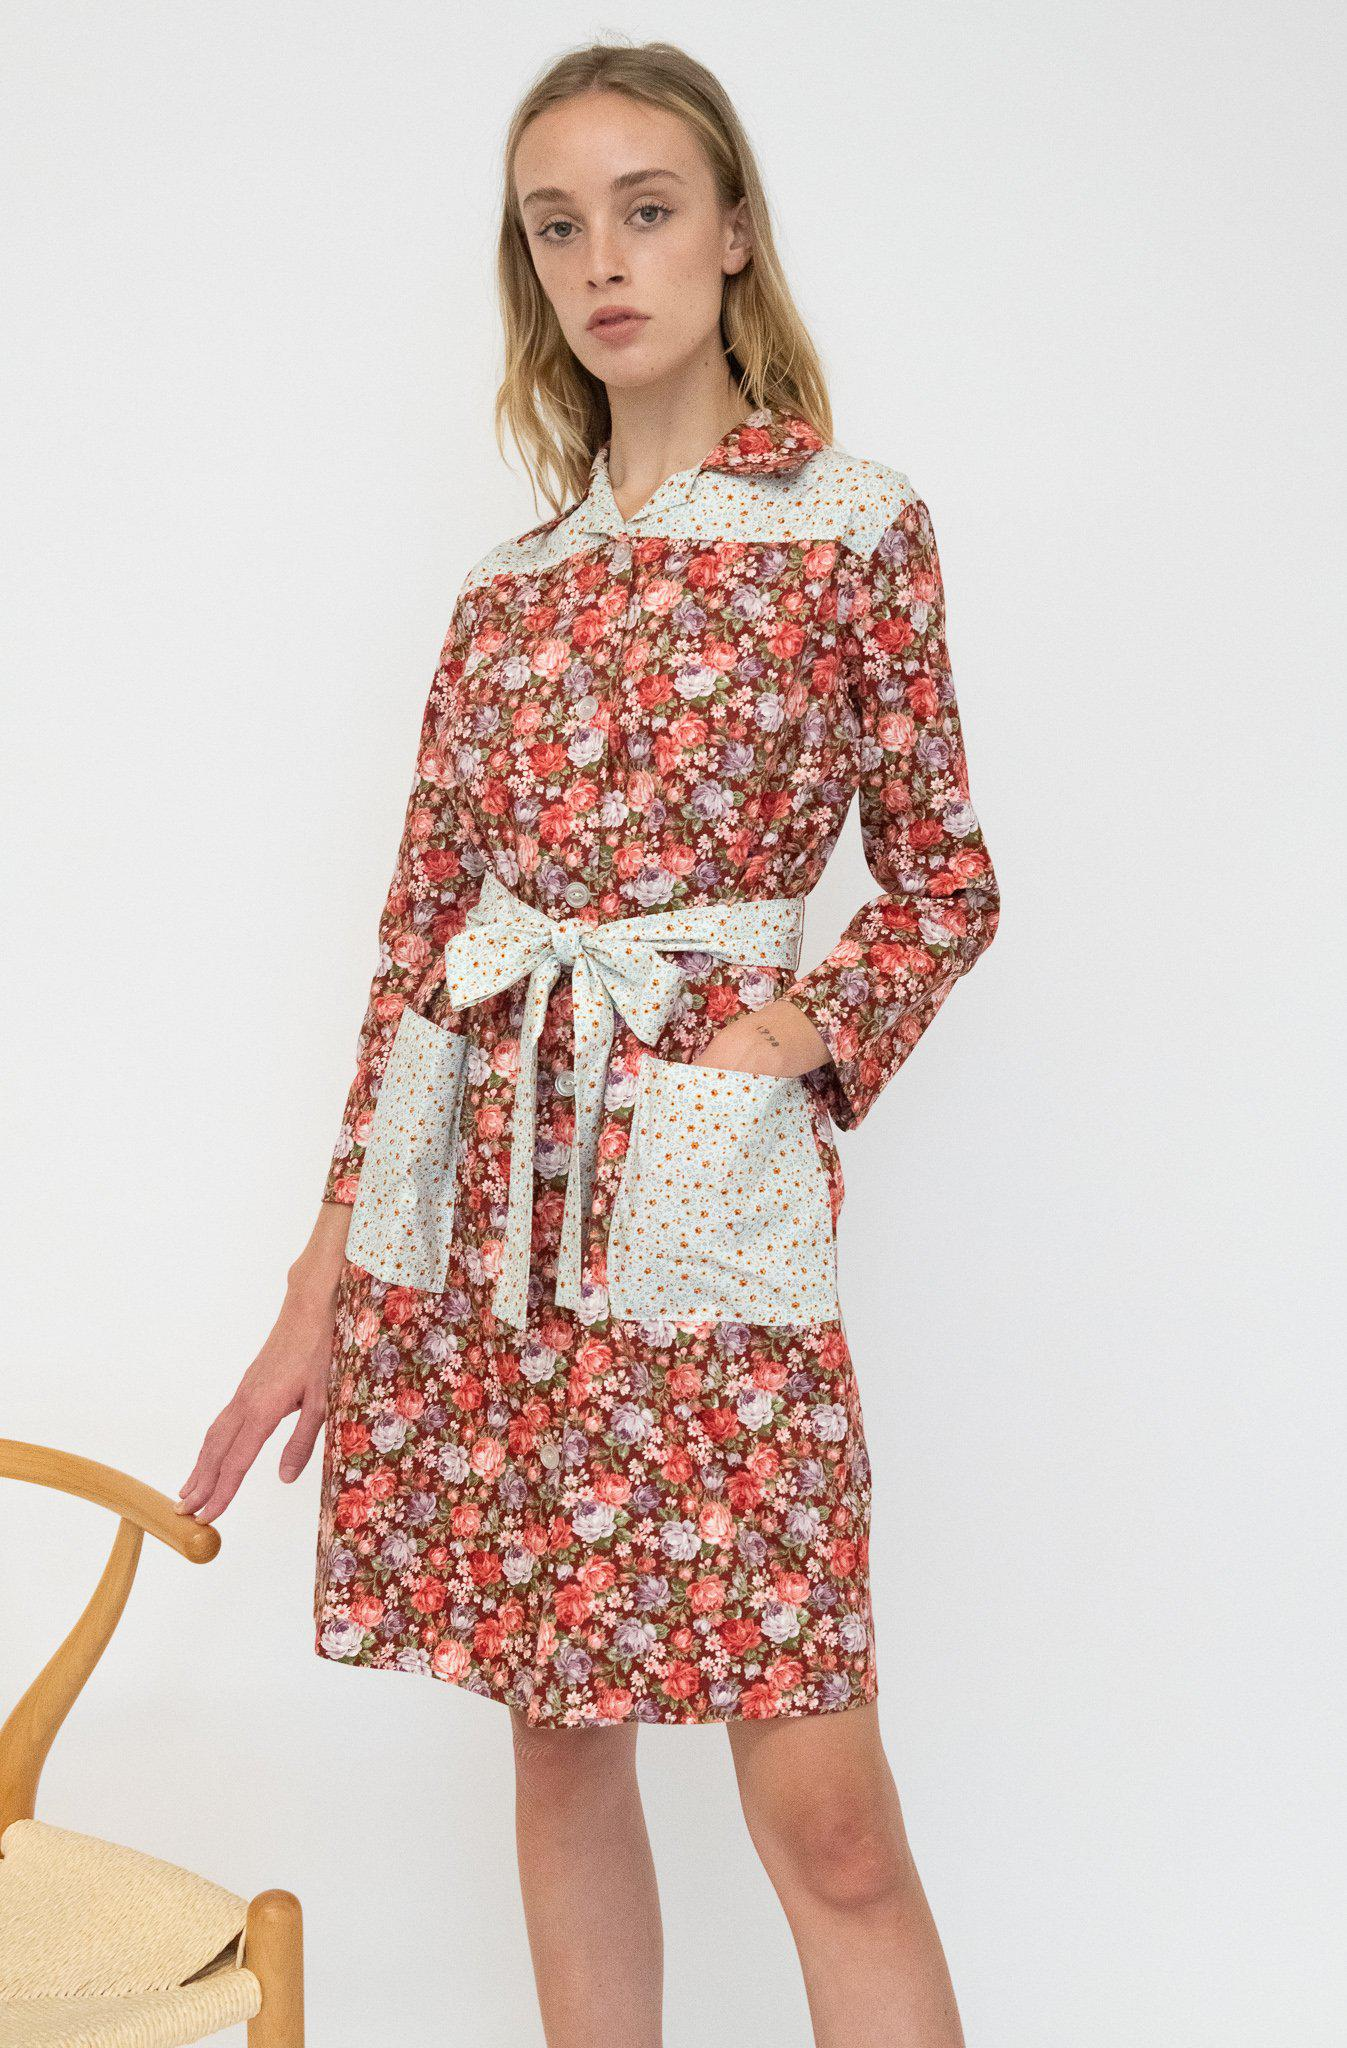 Long Sleeve Housedress in Cabernet Rose and Blue Floral